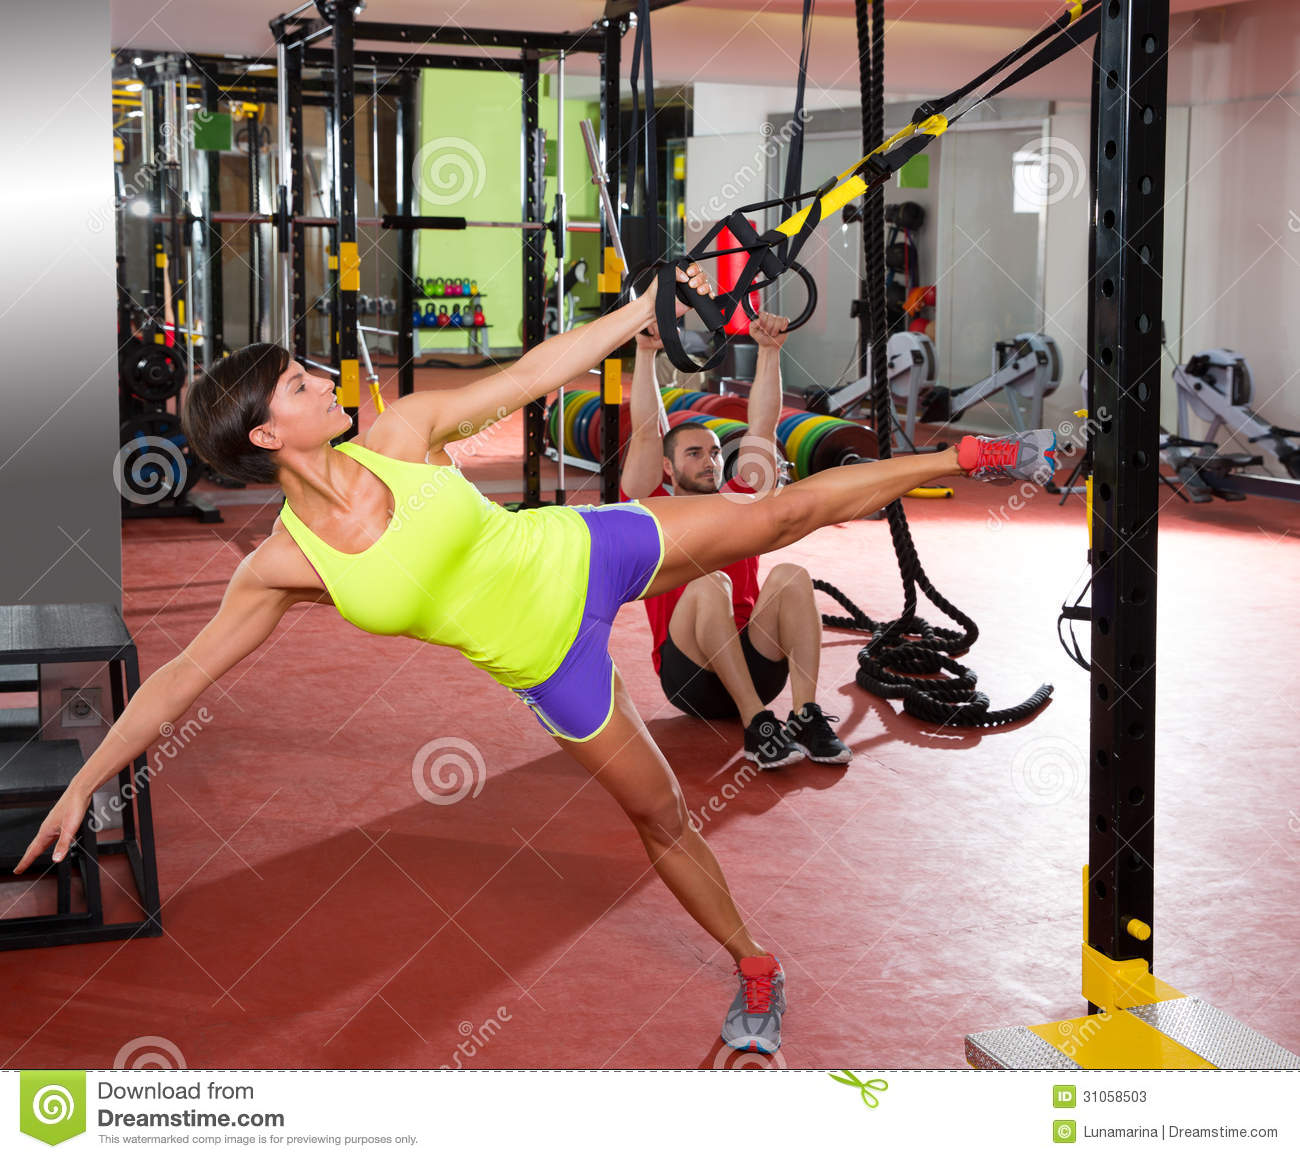 Amino Z Team Womens Weight Lifting Bodybuilding Gym: Fitness TRX Training Exercises At Gym Woman And Man Stock